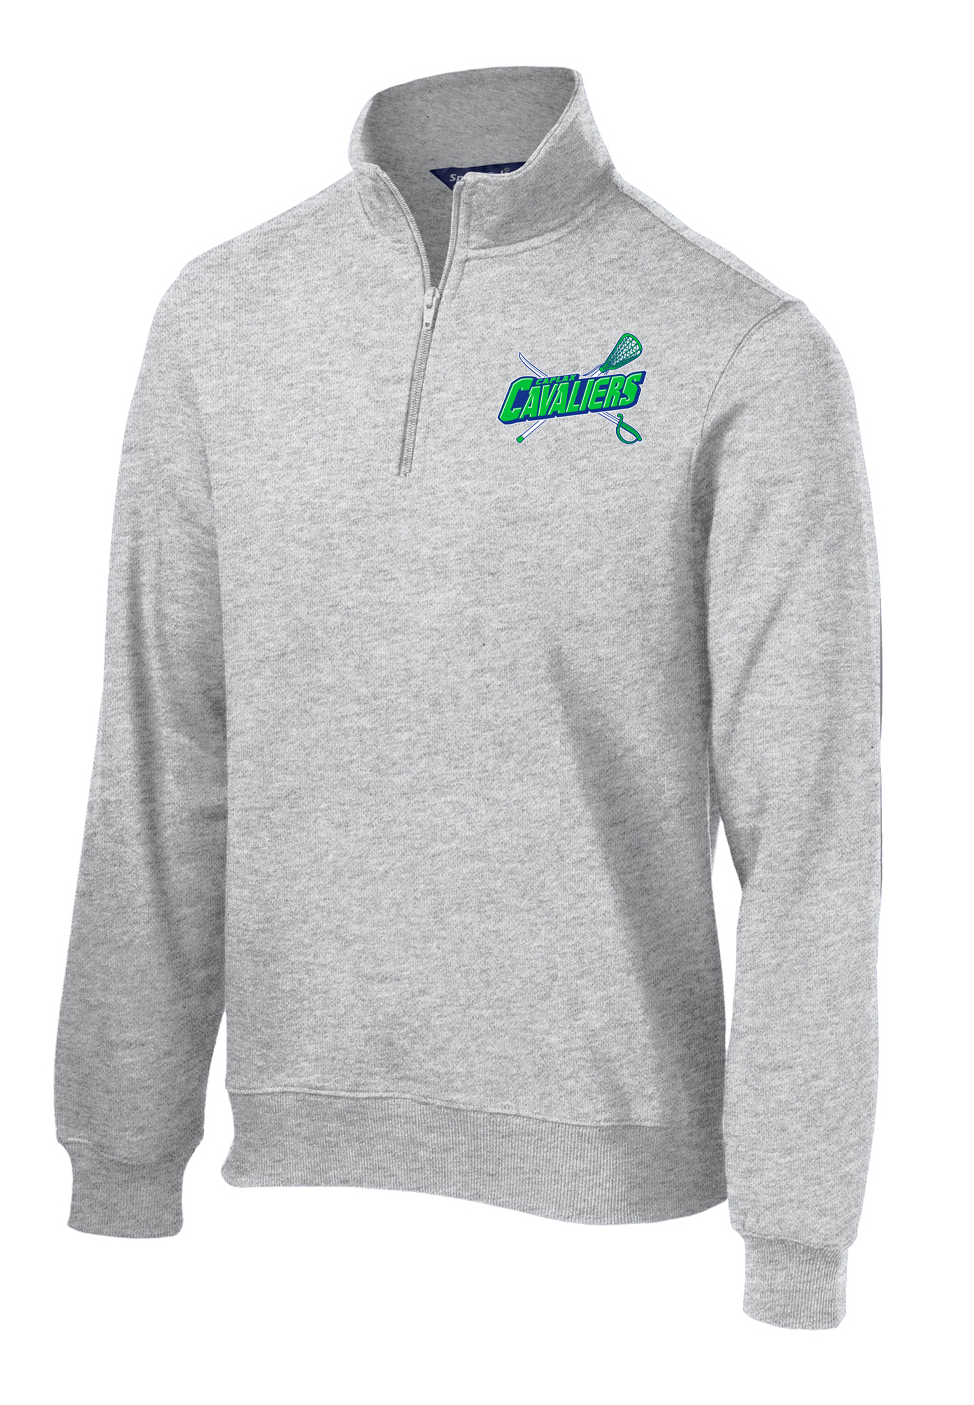 Cavaliers Lacrosse 1/4 Zip Fleece